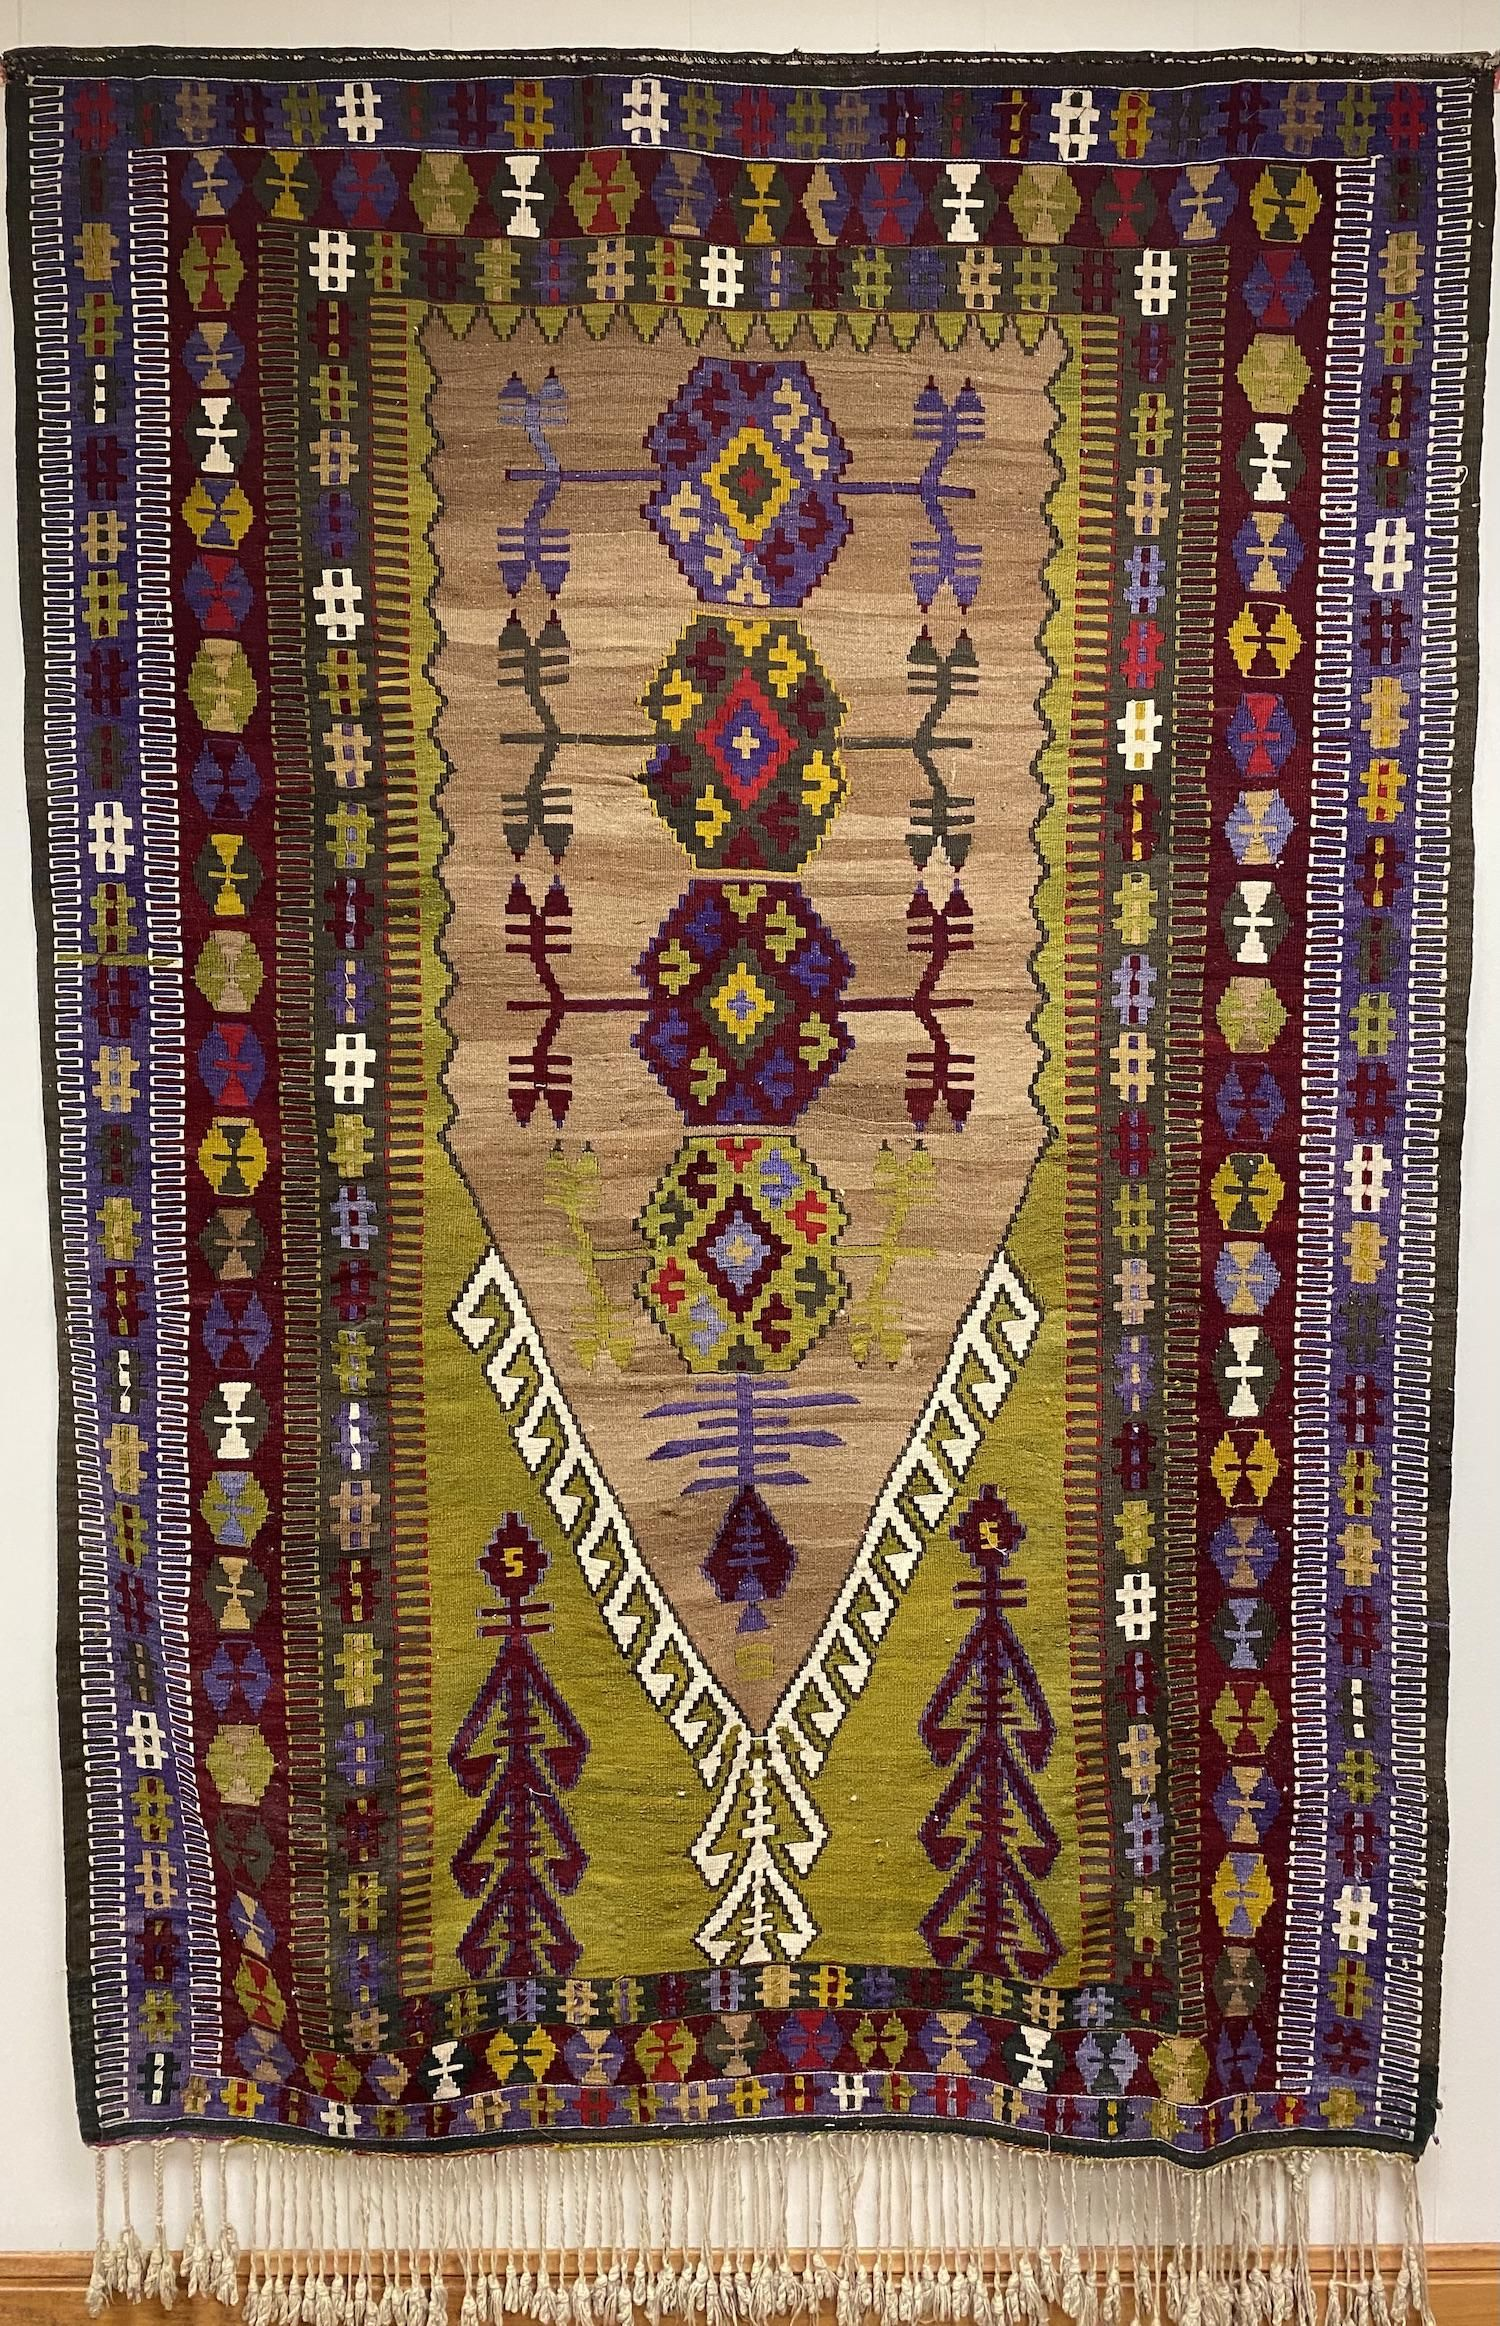 Tribal Kilim Rug with Bright Colors